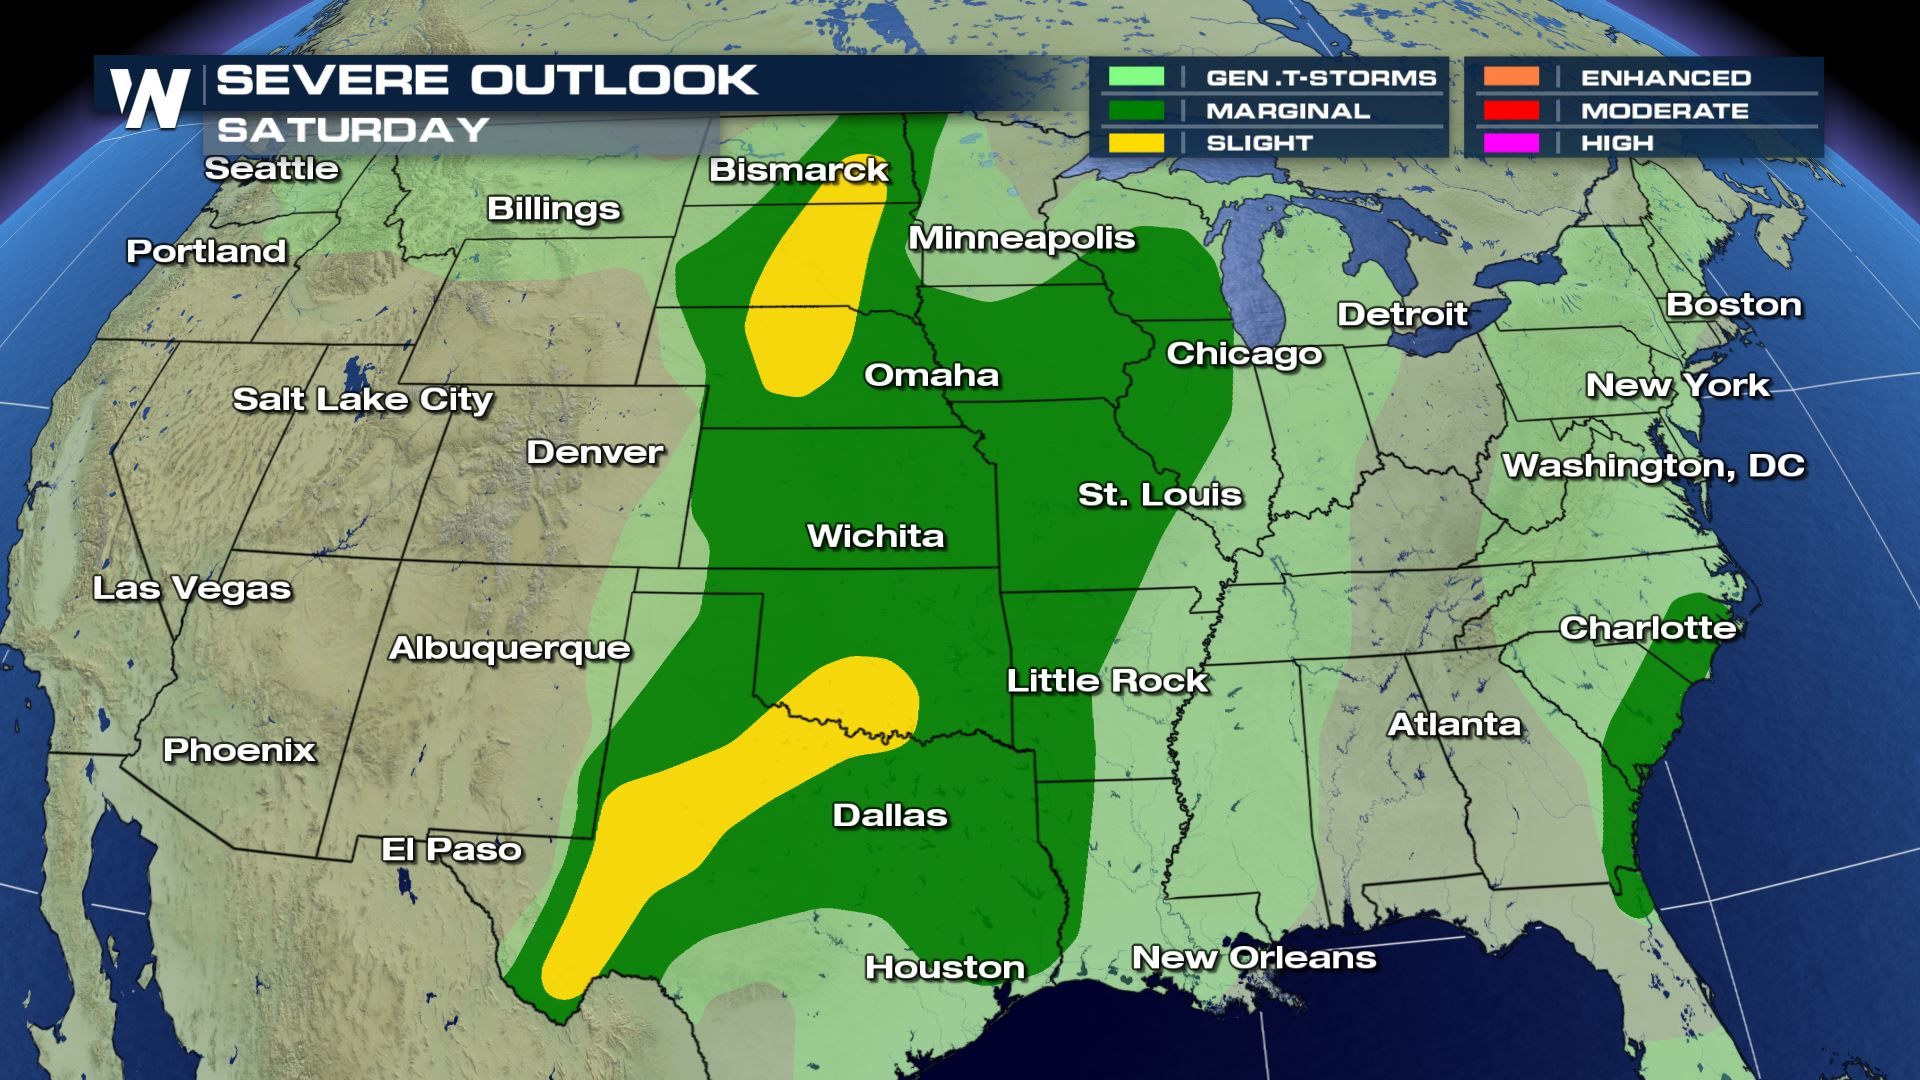 Widespread Severe Weather Risk on Saturday